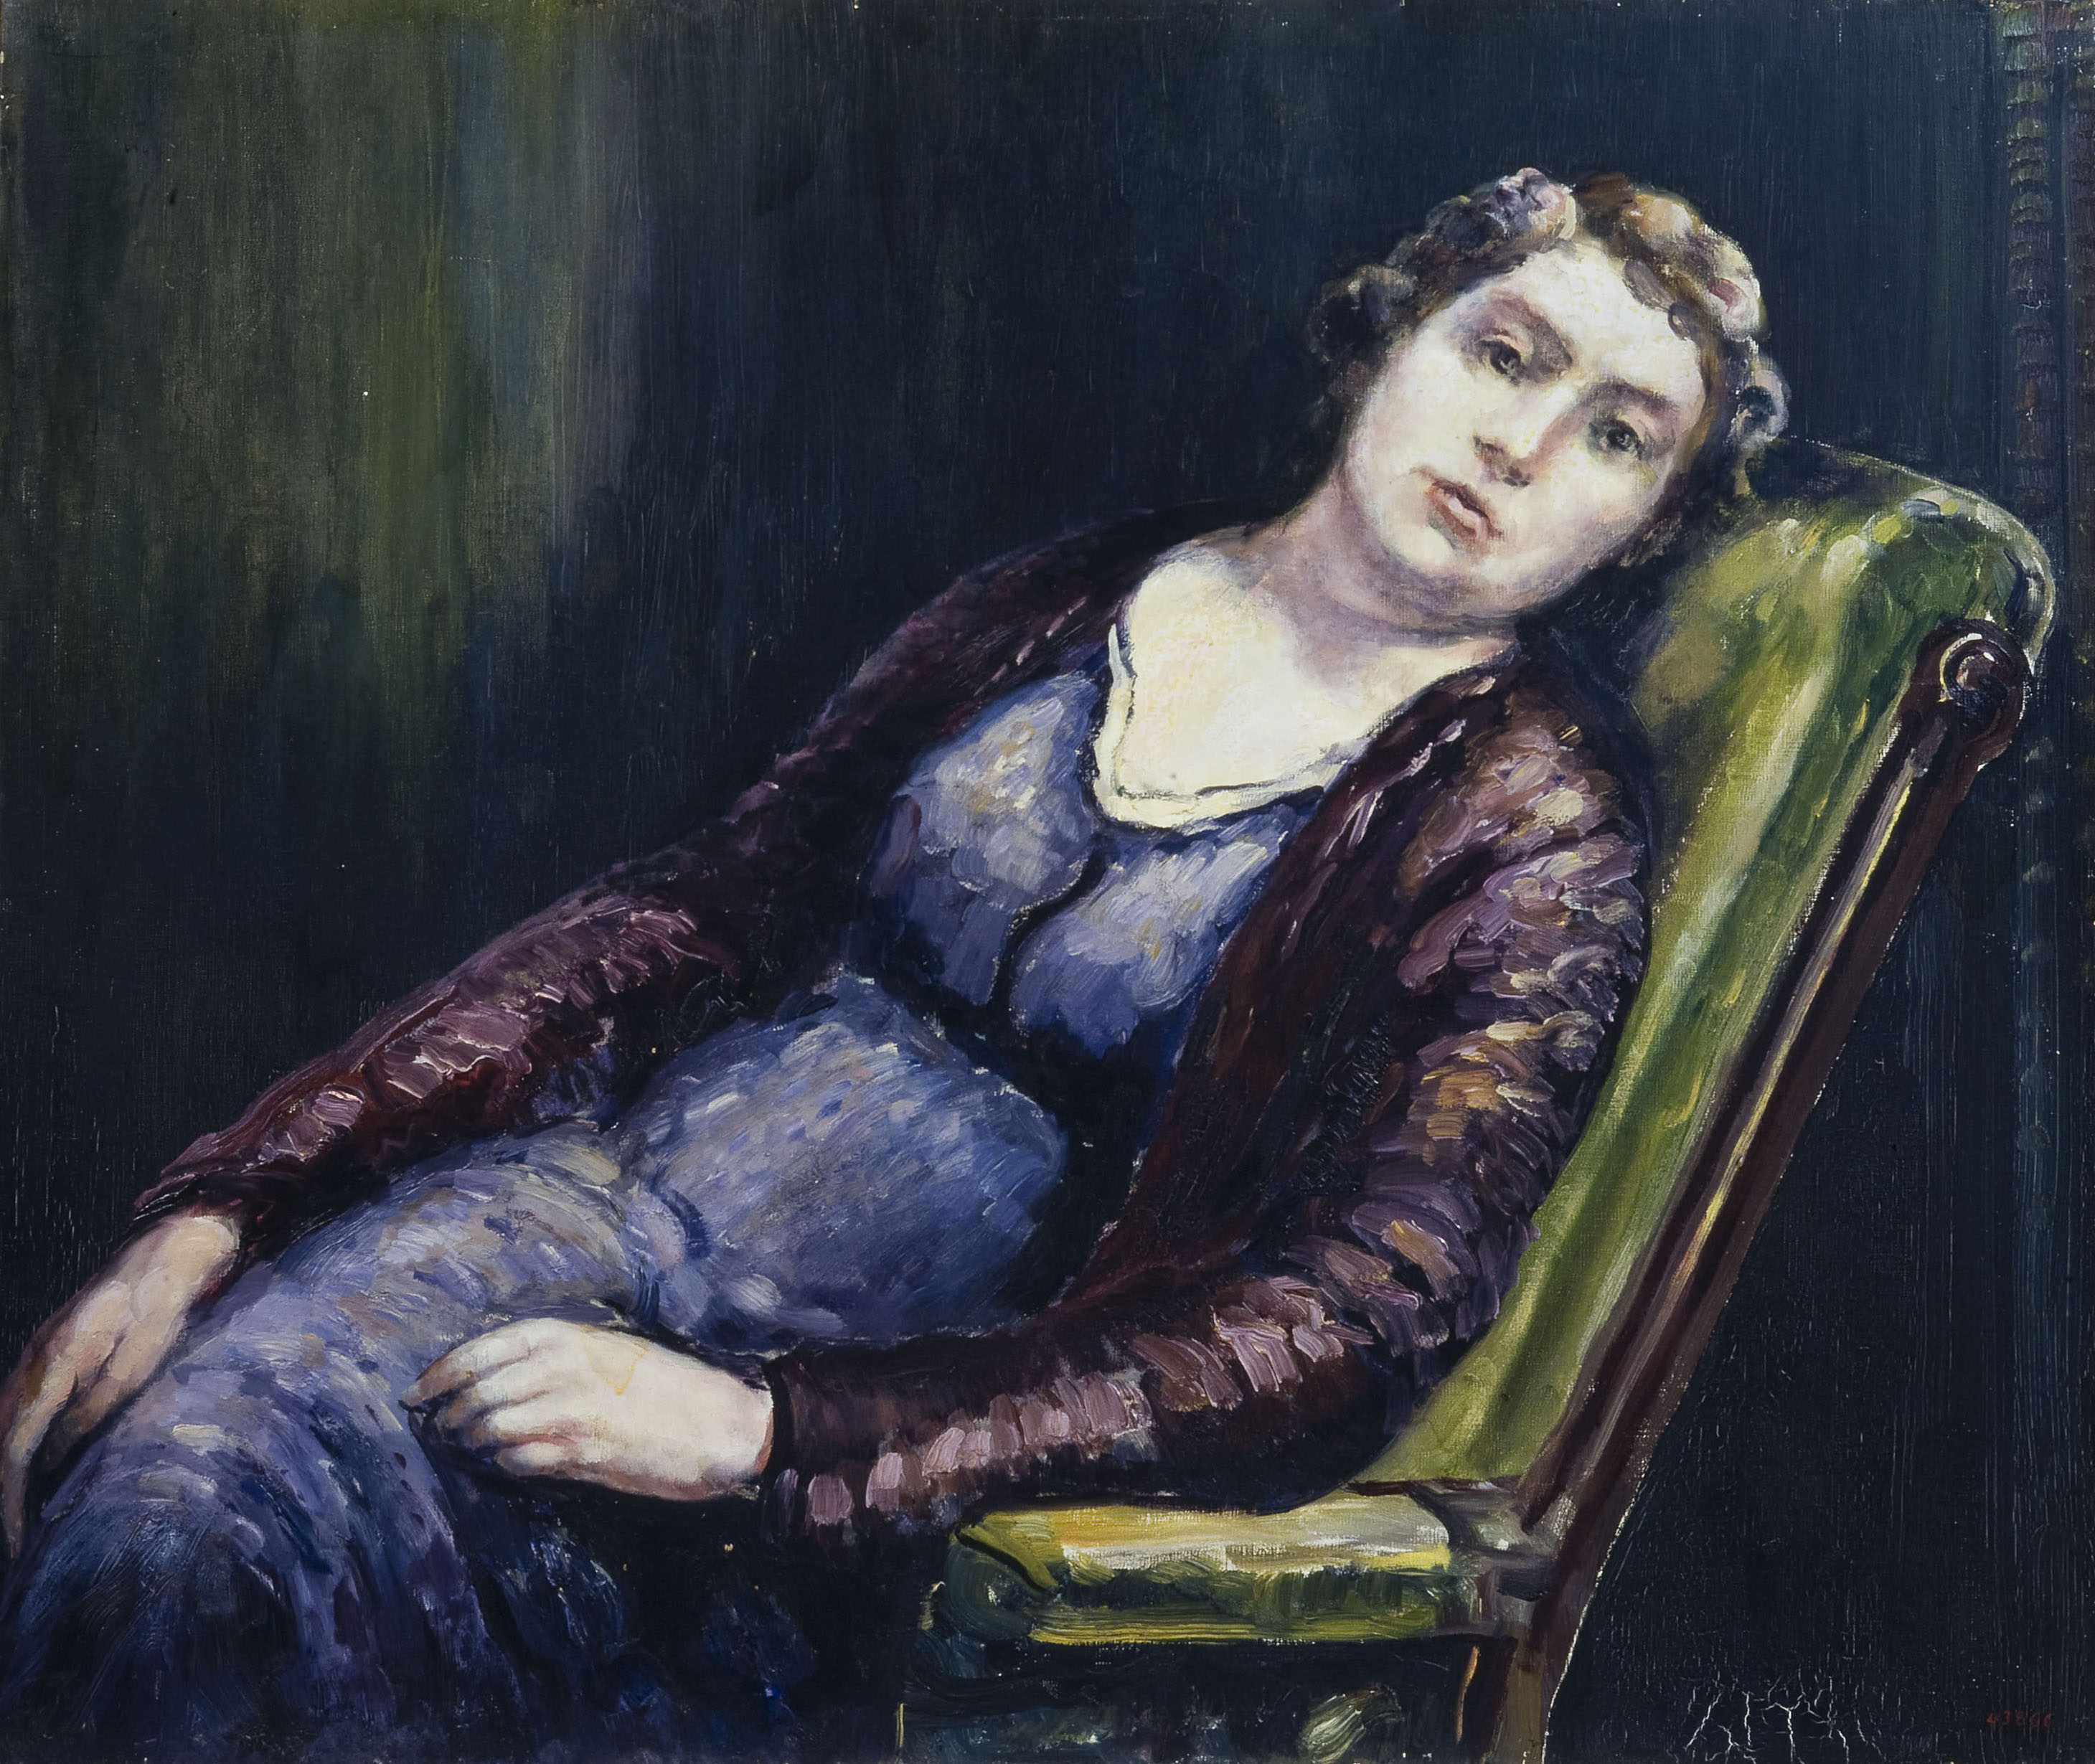 Marià Pidelaserra - The woman of the rocking chair - 1934